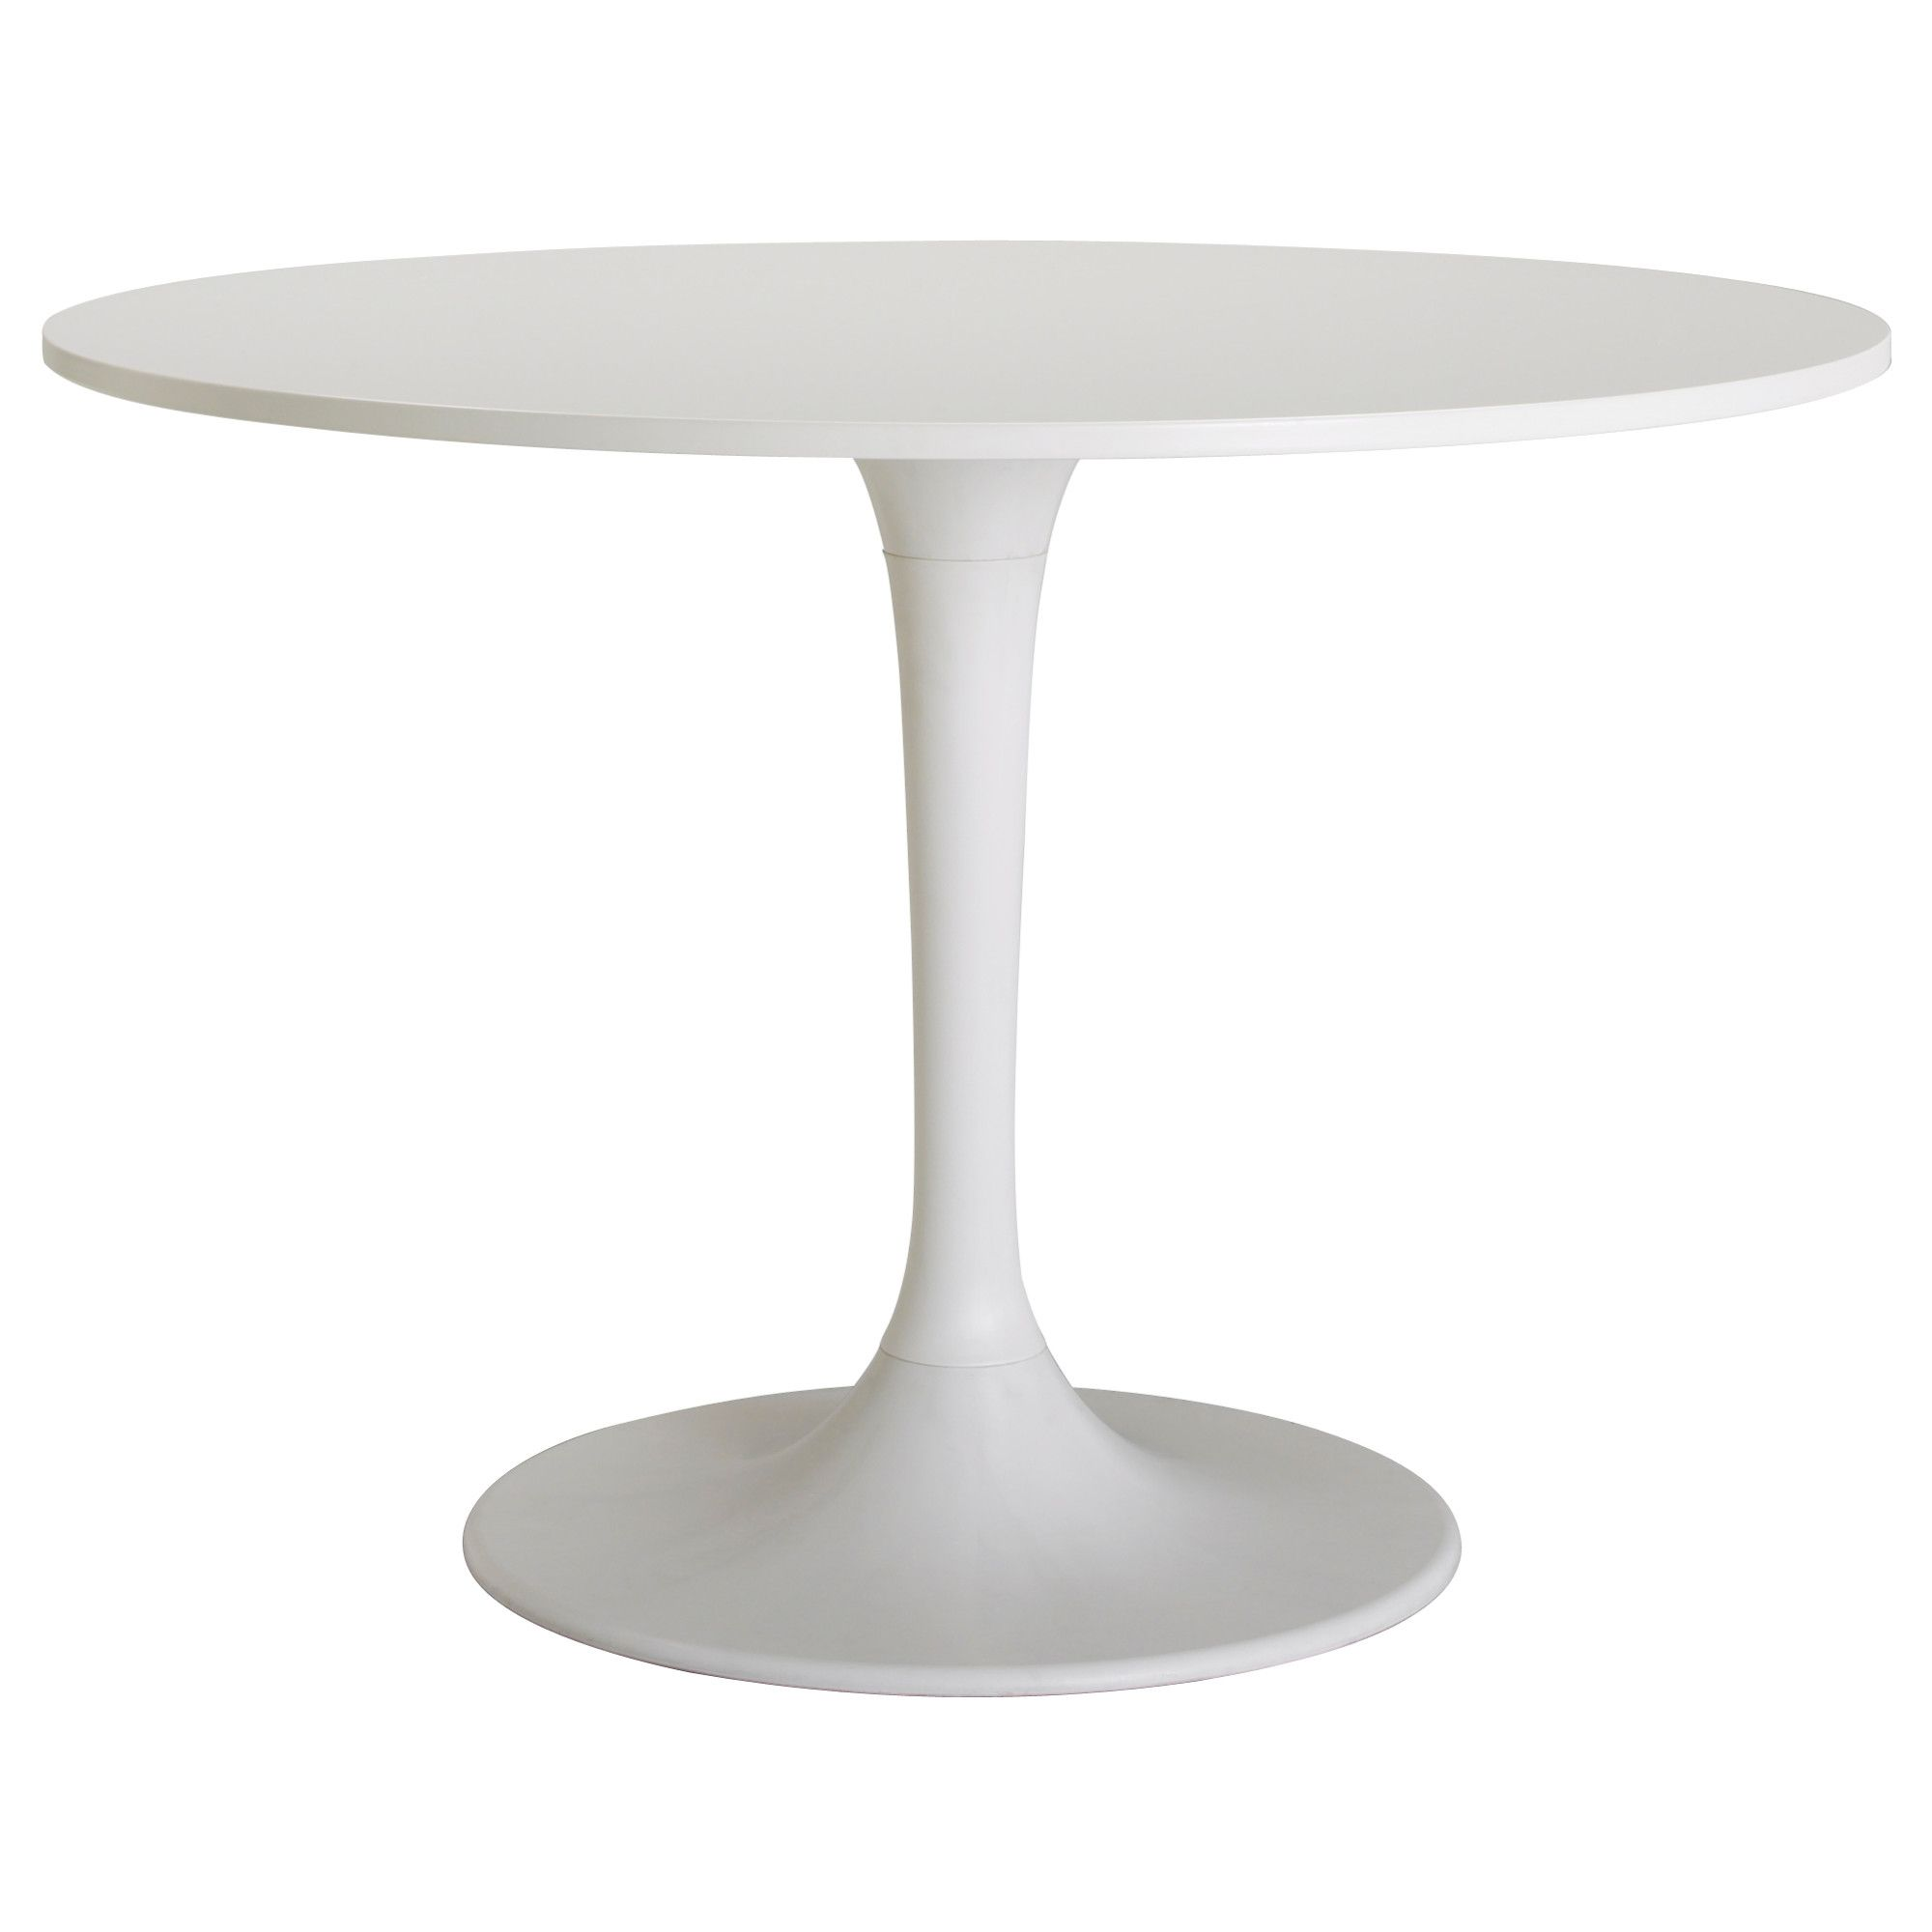 Drawing Of Ikea Tulip Table Ikea Tulip Table White Dining Table